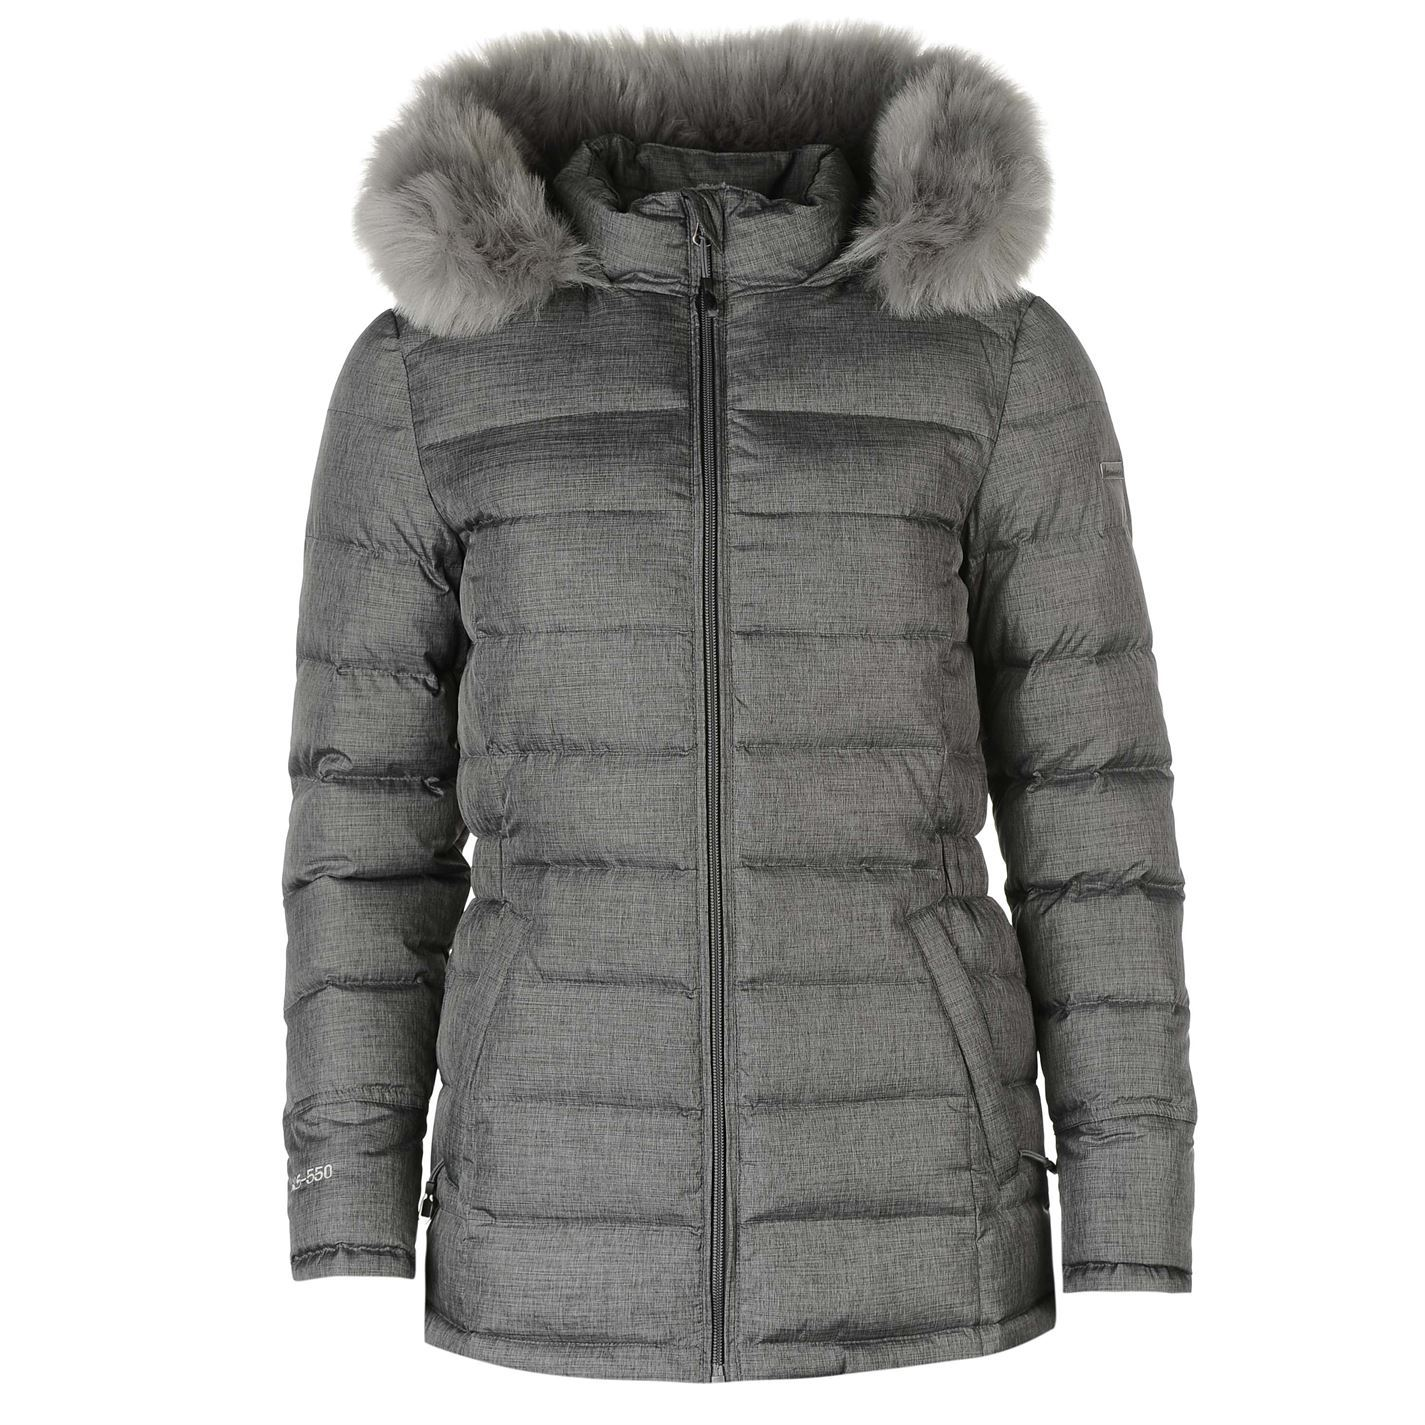 320908a49d7 Karrimor Hooded Down Jacket Ladies Brining style in comfort, the Karrimor  Hooded Down Jacket features a full zip fastening with chin guard and  internal ...